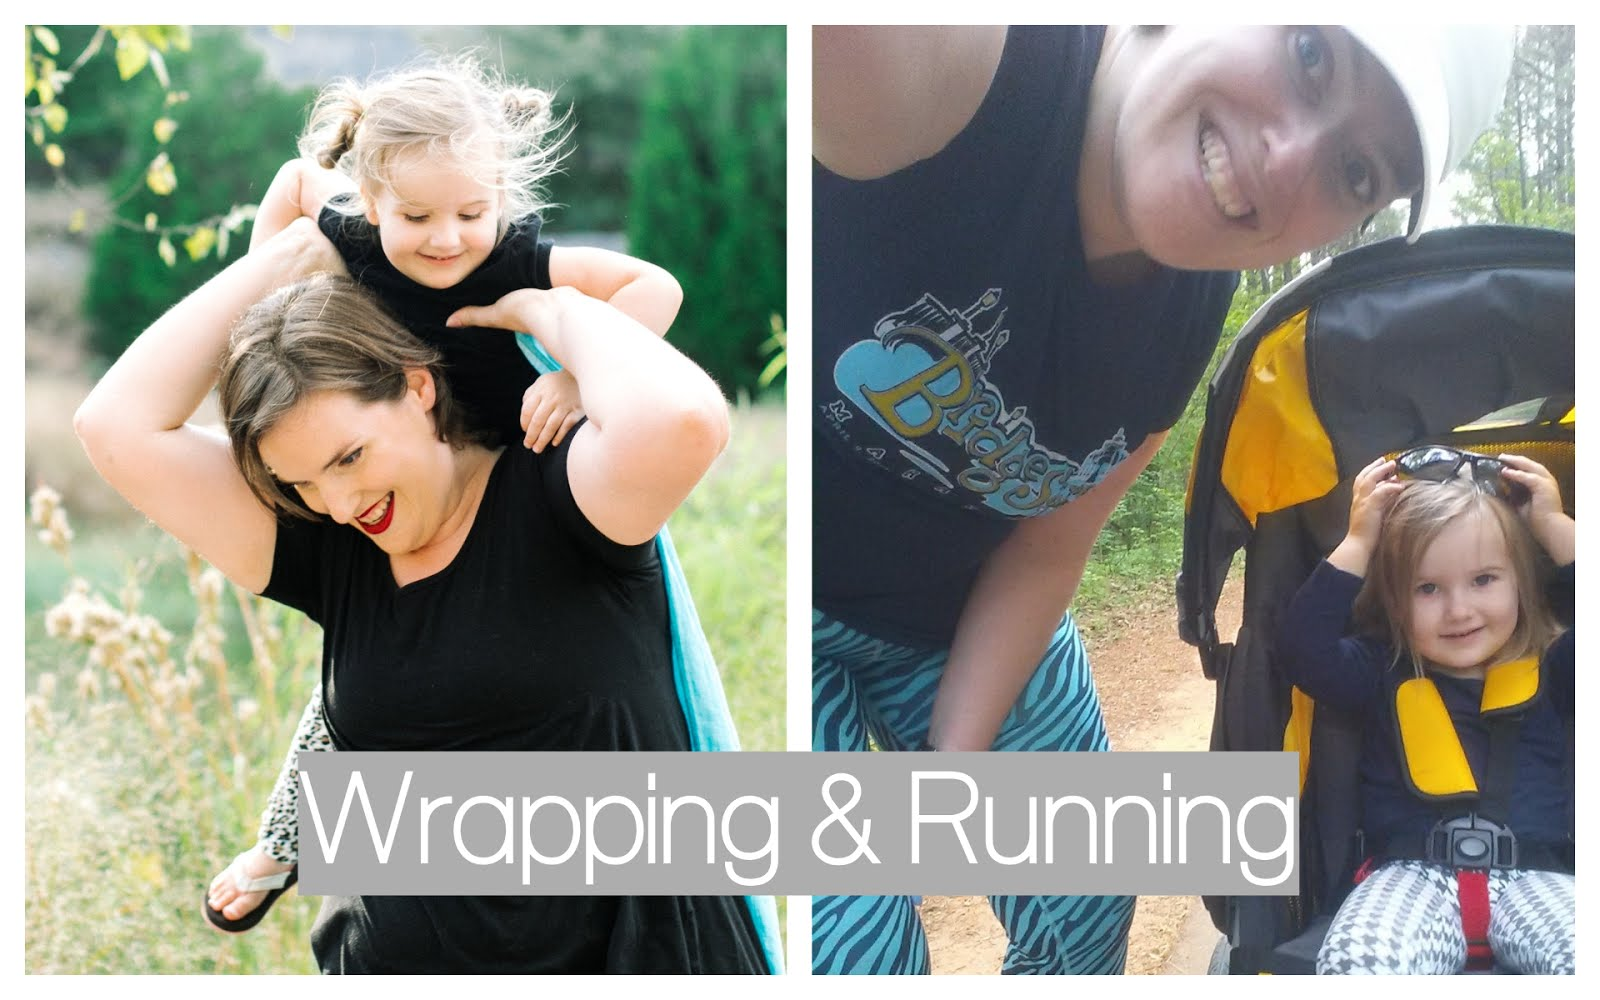 Wrapping & Running